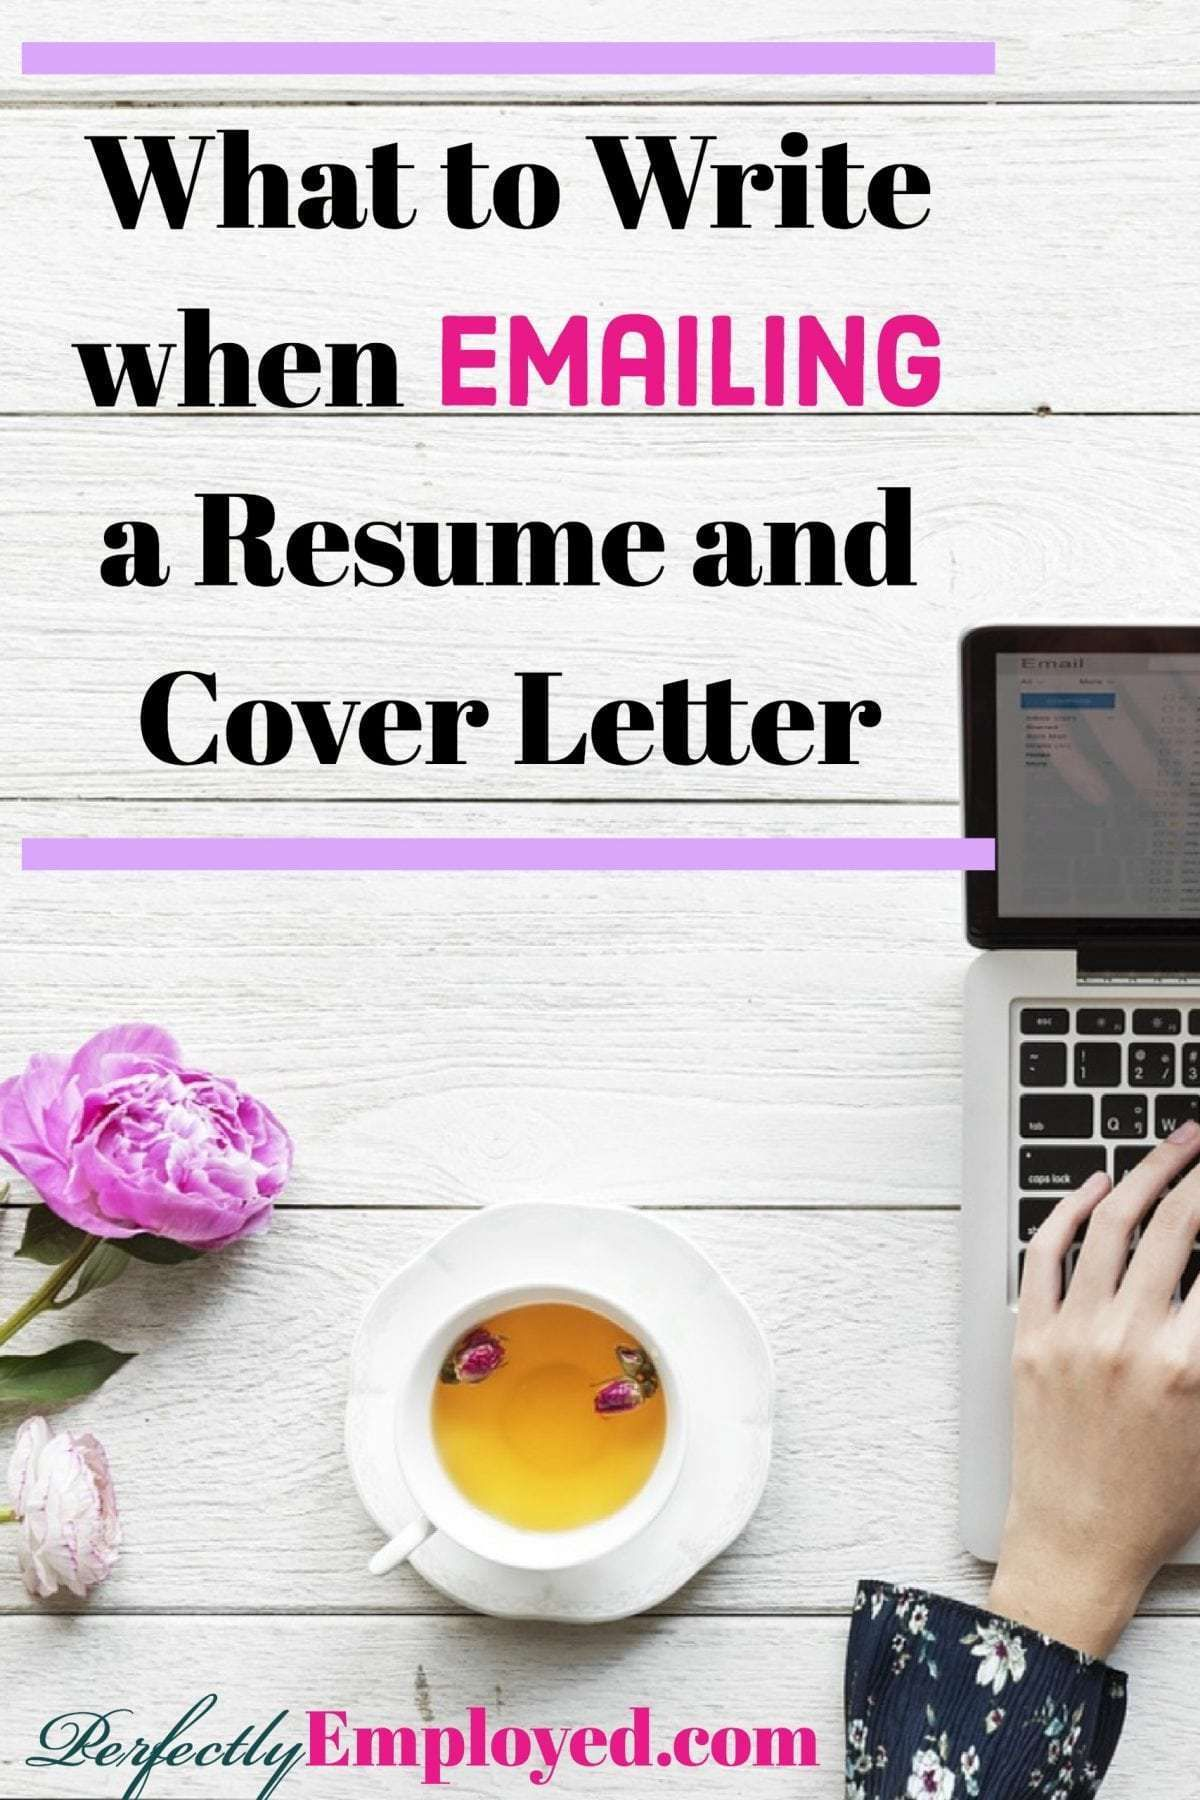 What to Write when Emailing a Resume Perfectly Employed